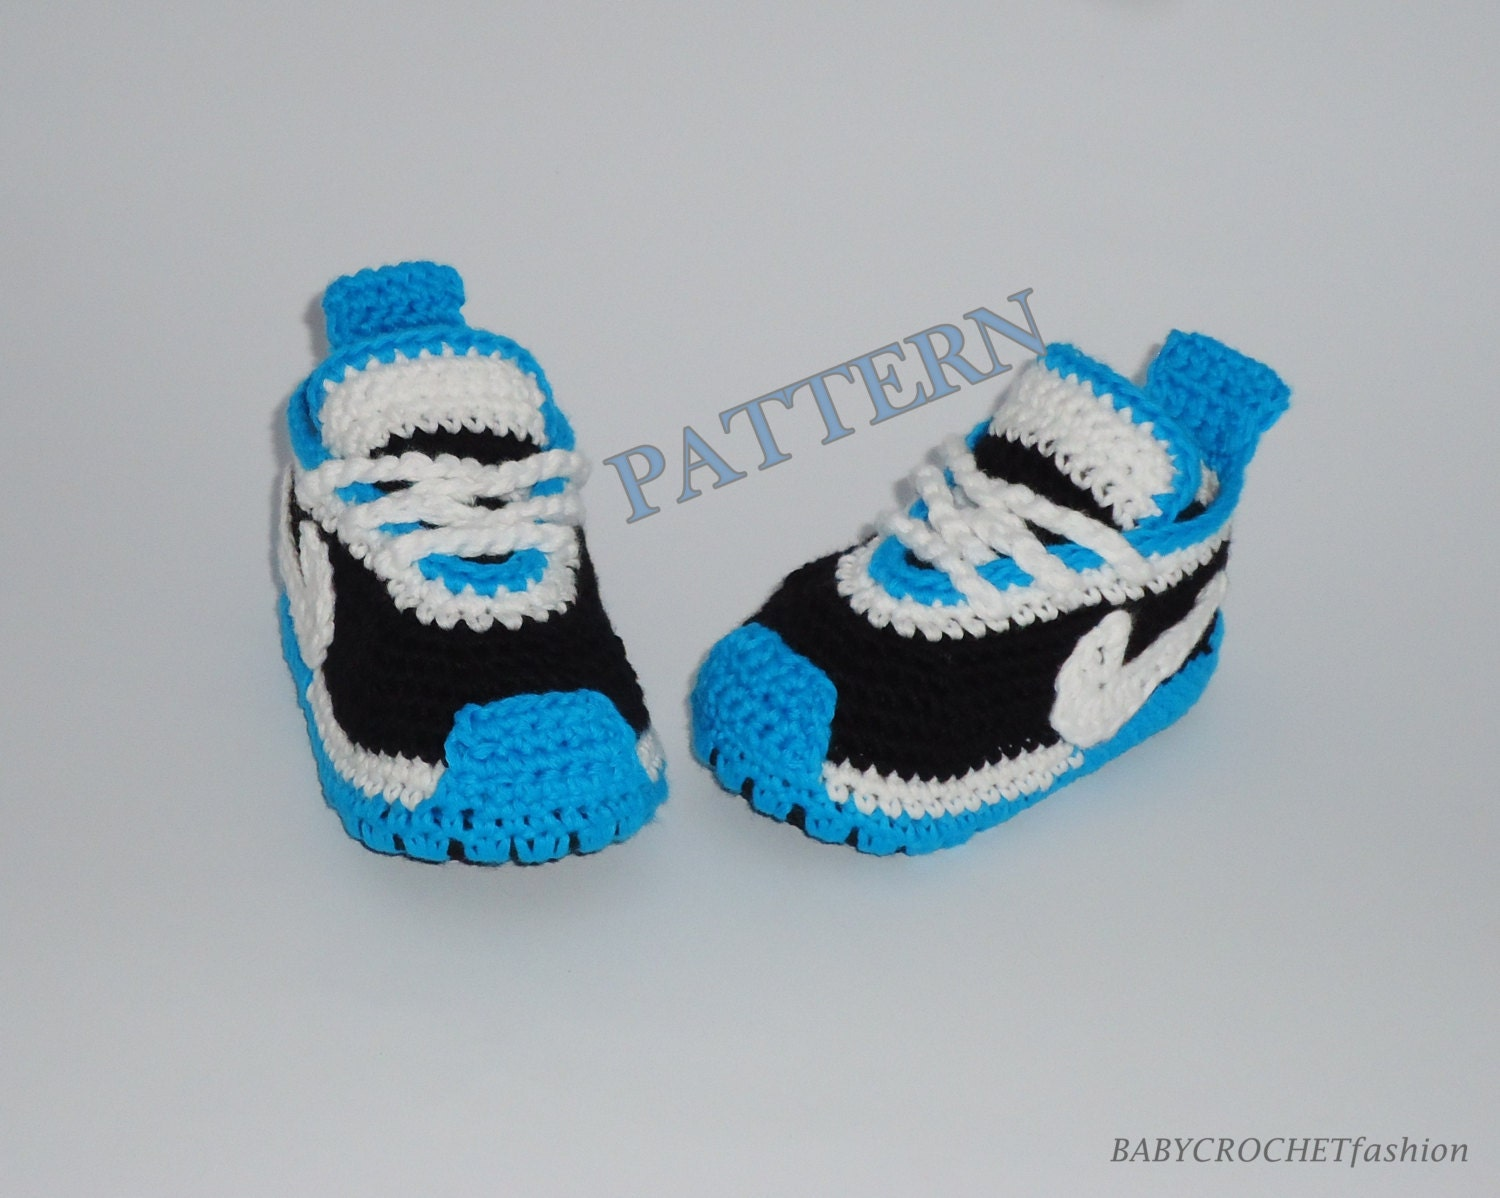 Crochet Baby Tennis Shoe Pattern